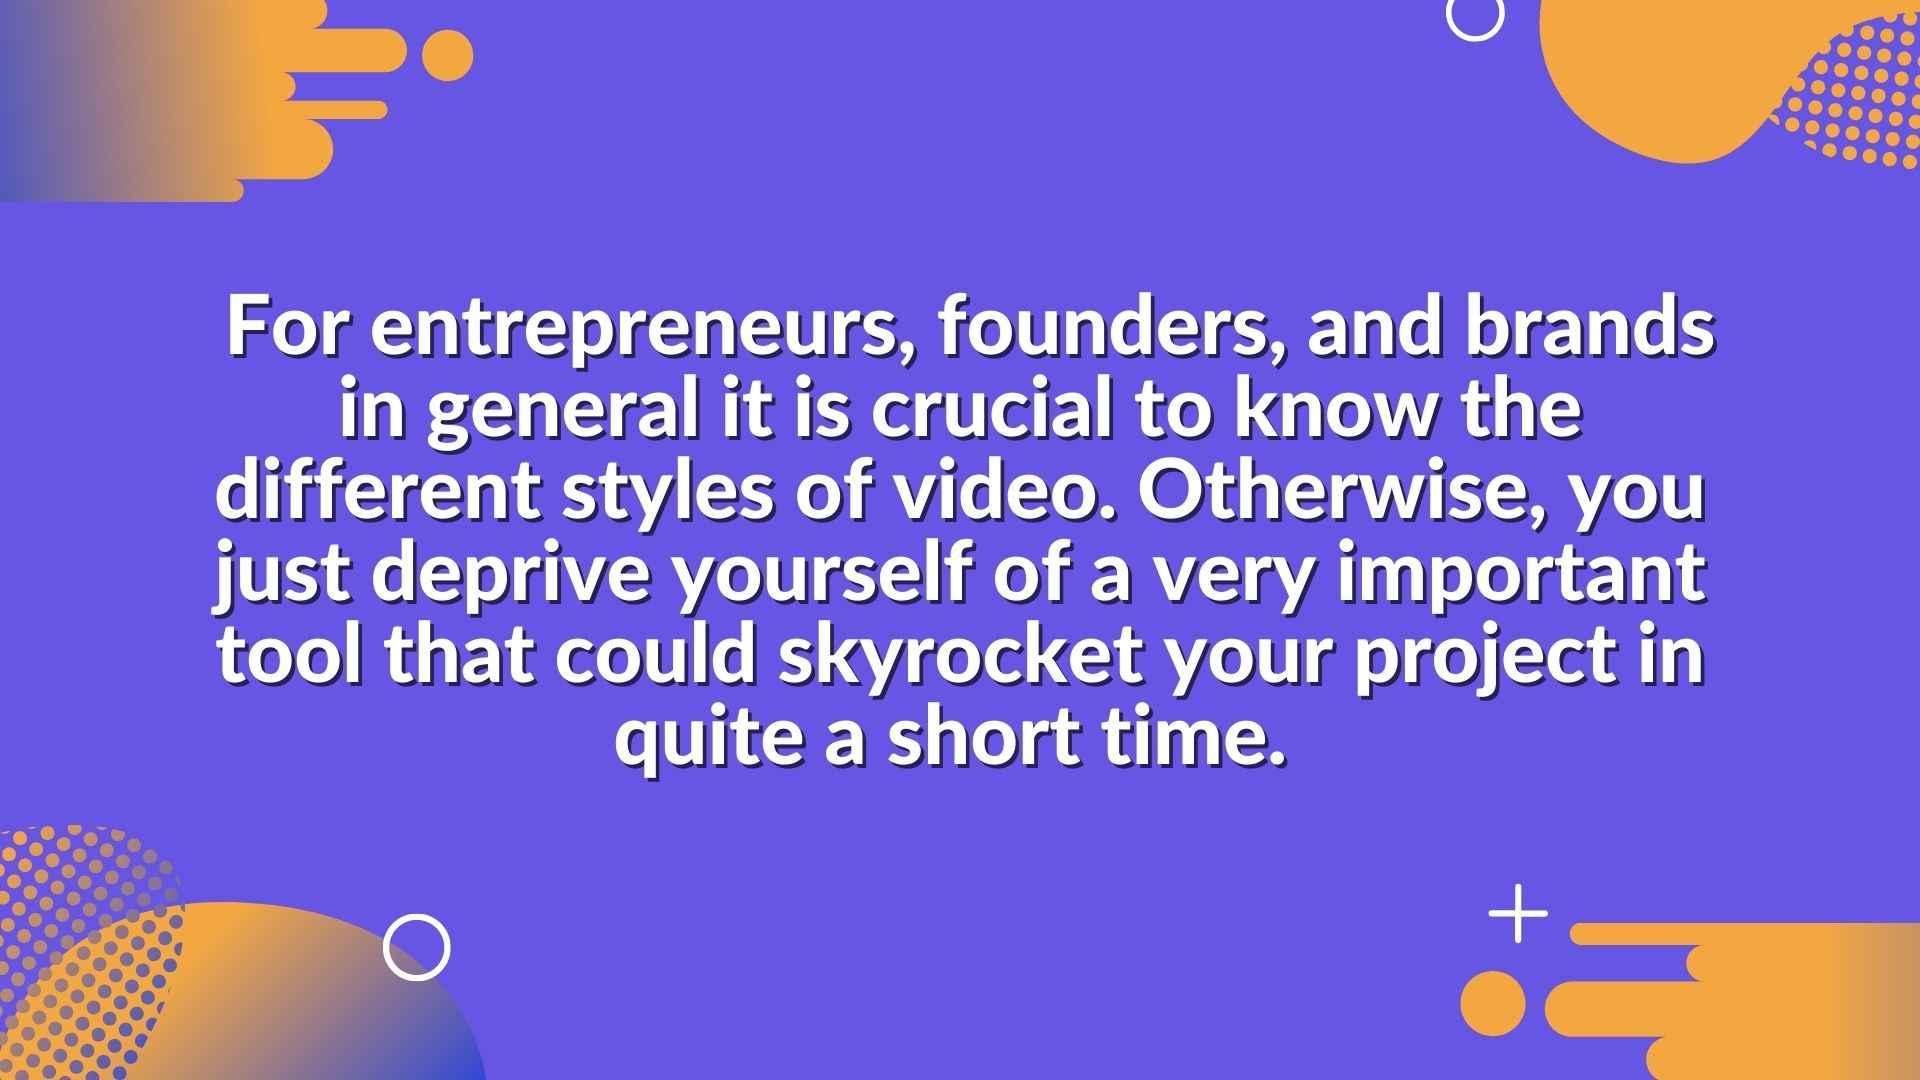 Video styles in articles about marketing videos